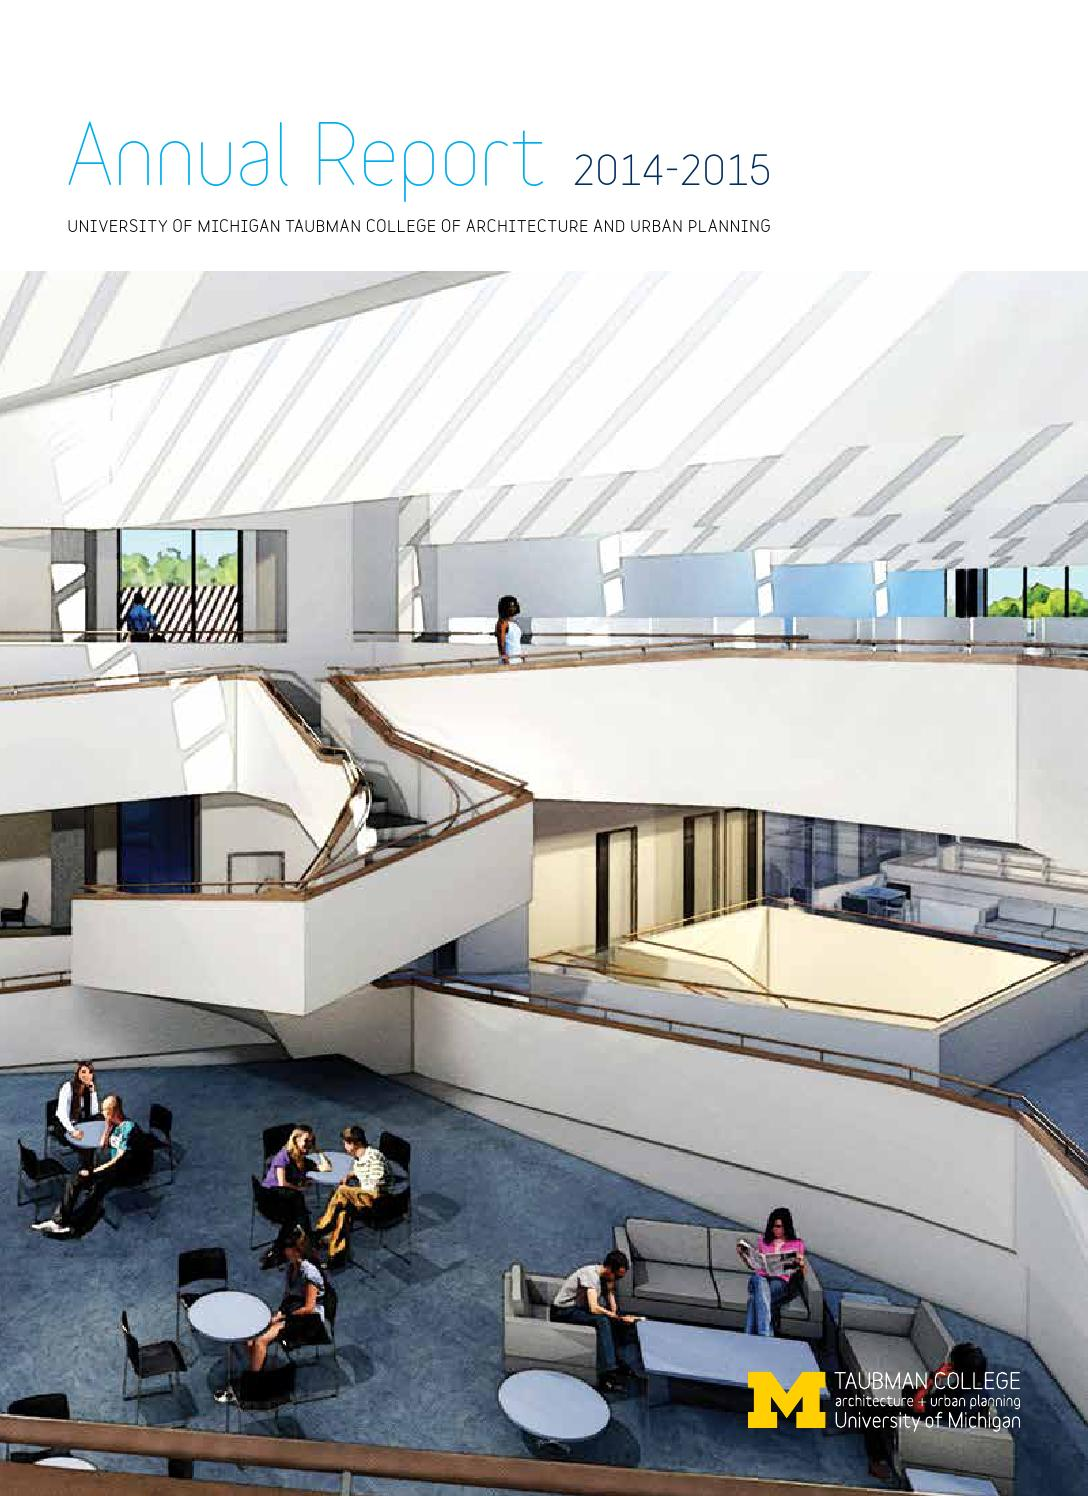 2015 Annual Report By Taubman College Of Architecture And Urban Plannin    Issuu